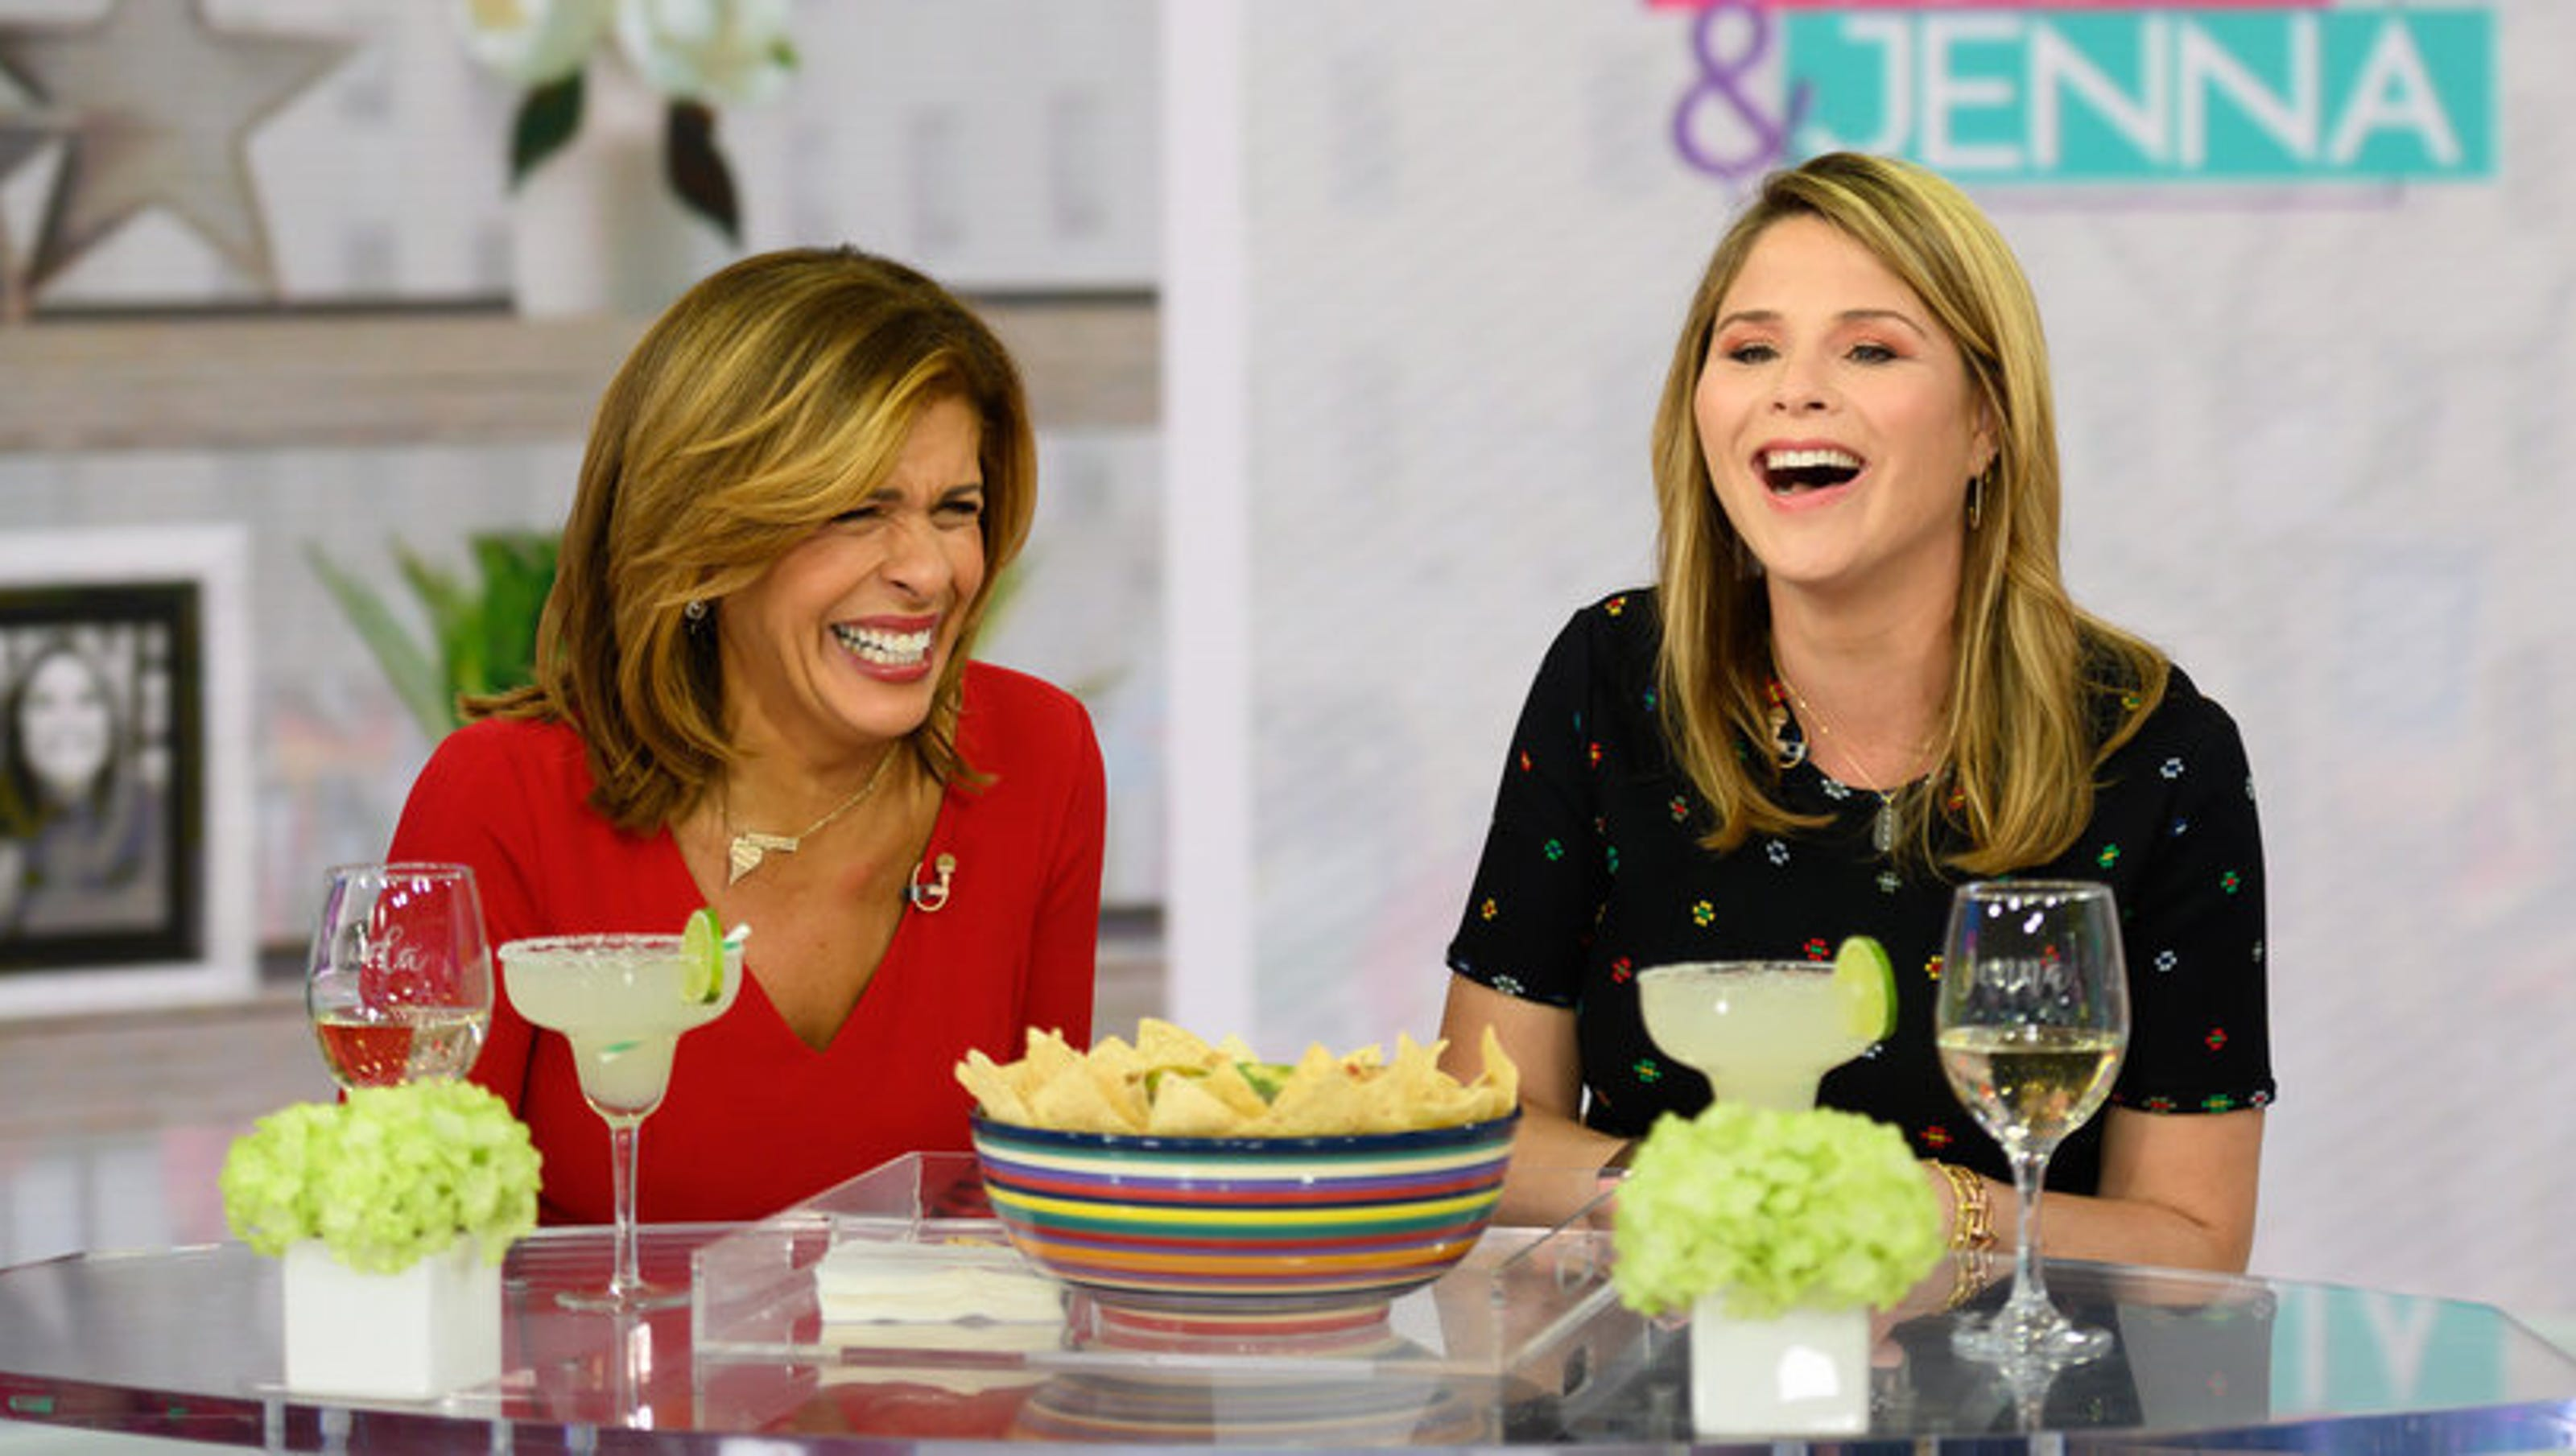 Jenna Bush Hager on being pregnant while starting a new job: 'Is the timing ideal? Not really'